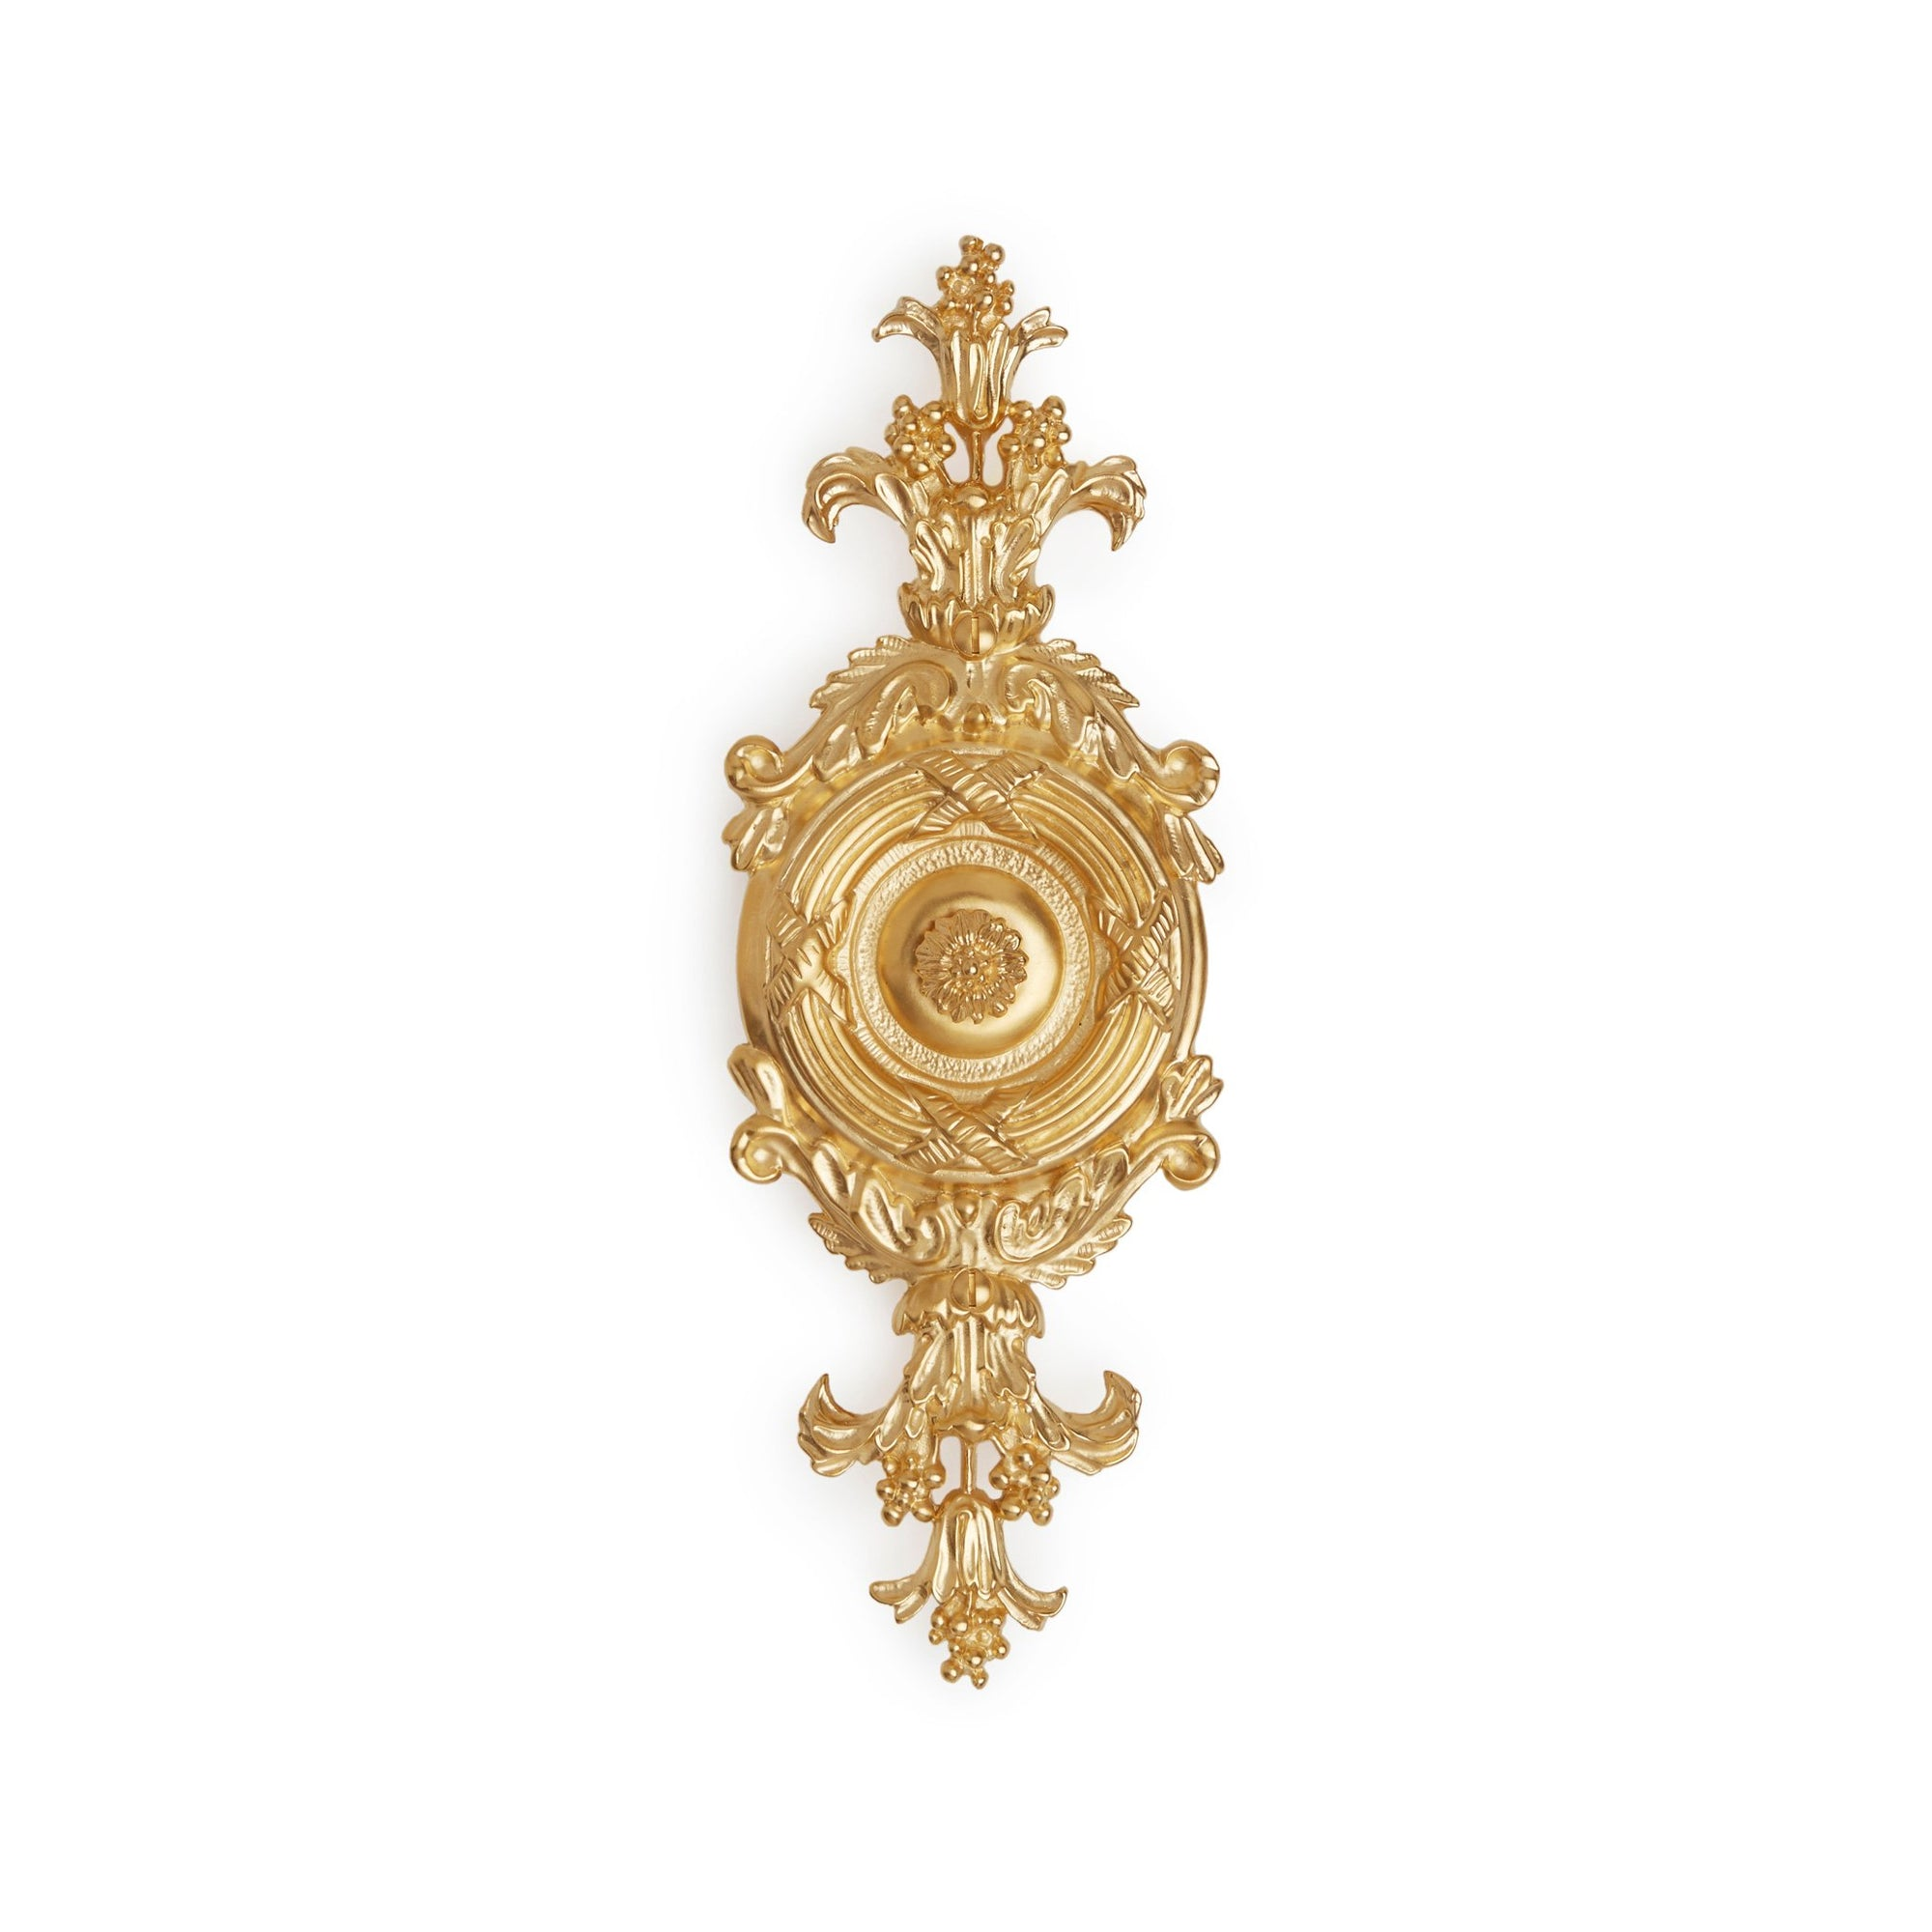 1088-GP Sherle Wagner International Ribbon & Reed Door Bell Cover in Gold Plate metal finish